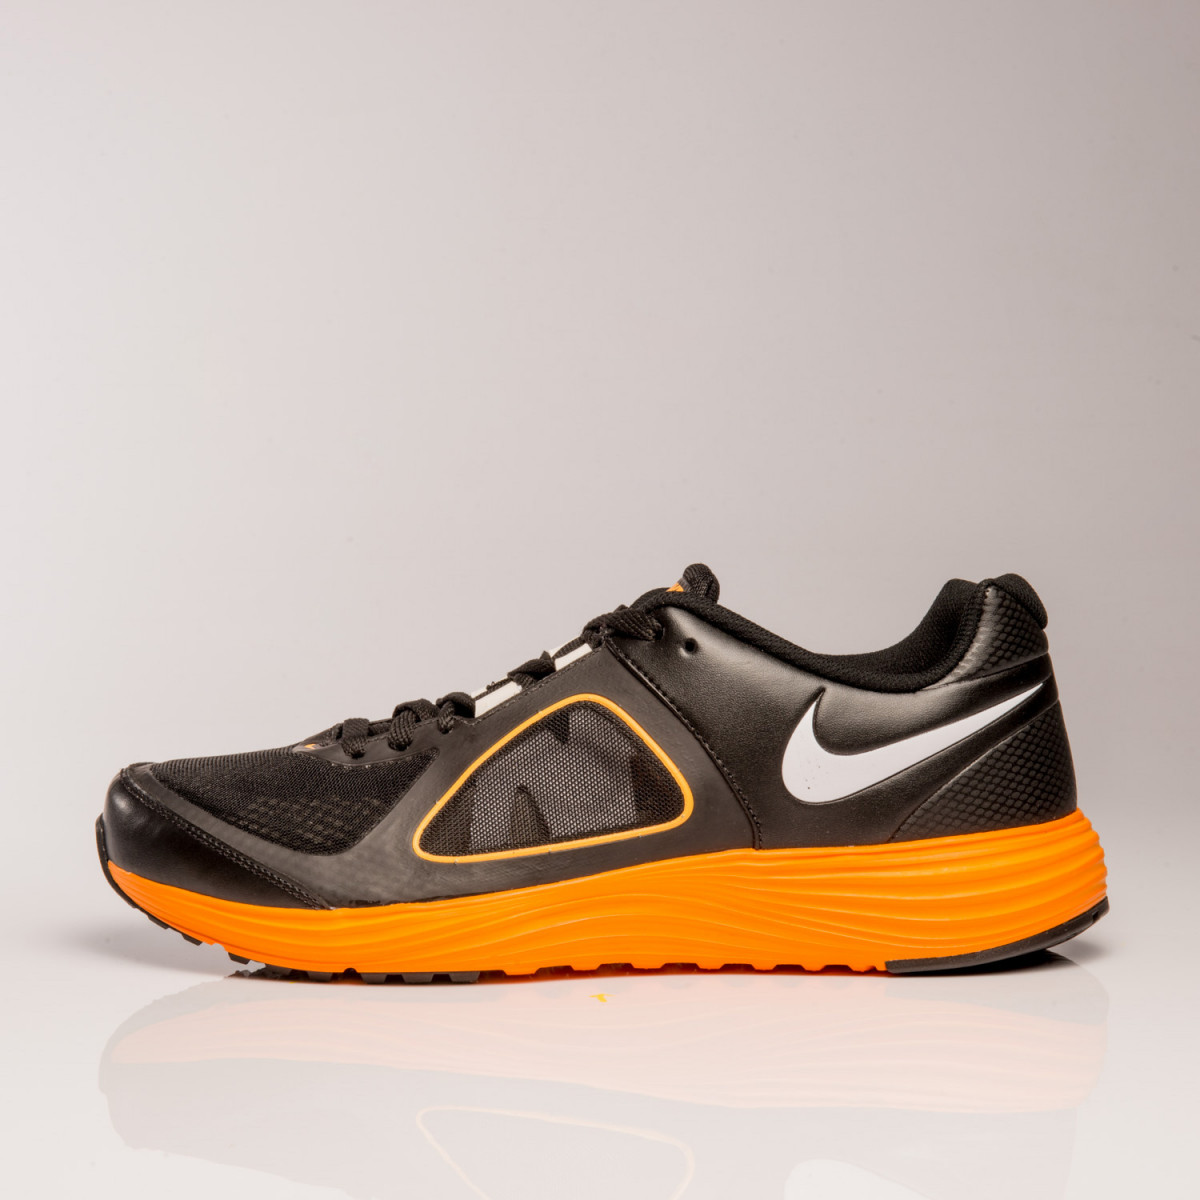 Zapatillas Nike Emerge 2 Emb